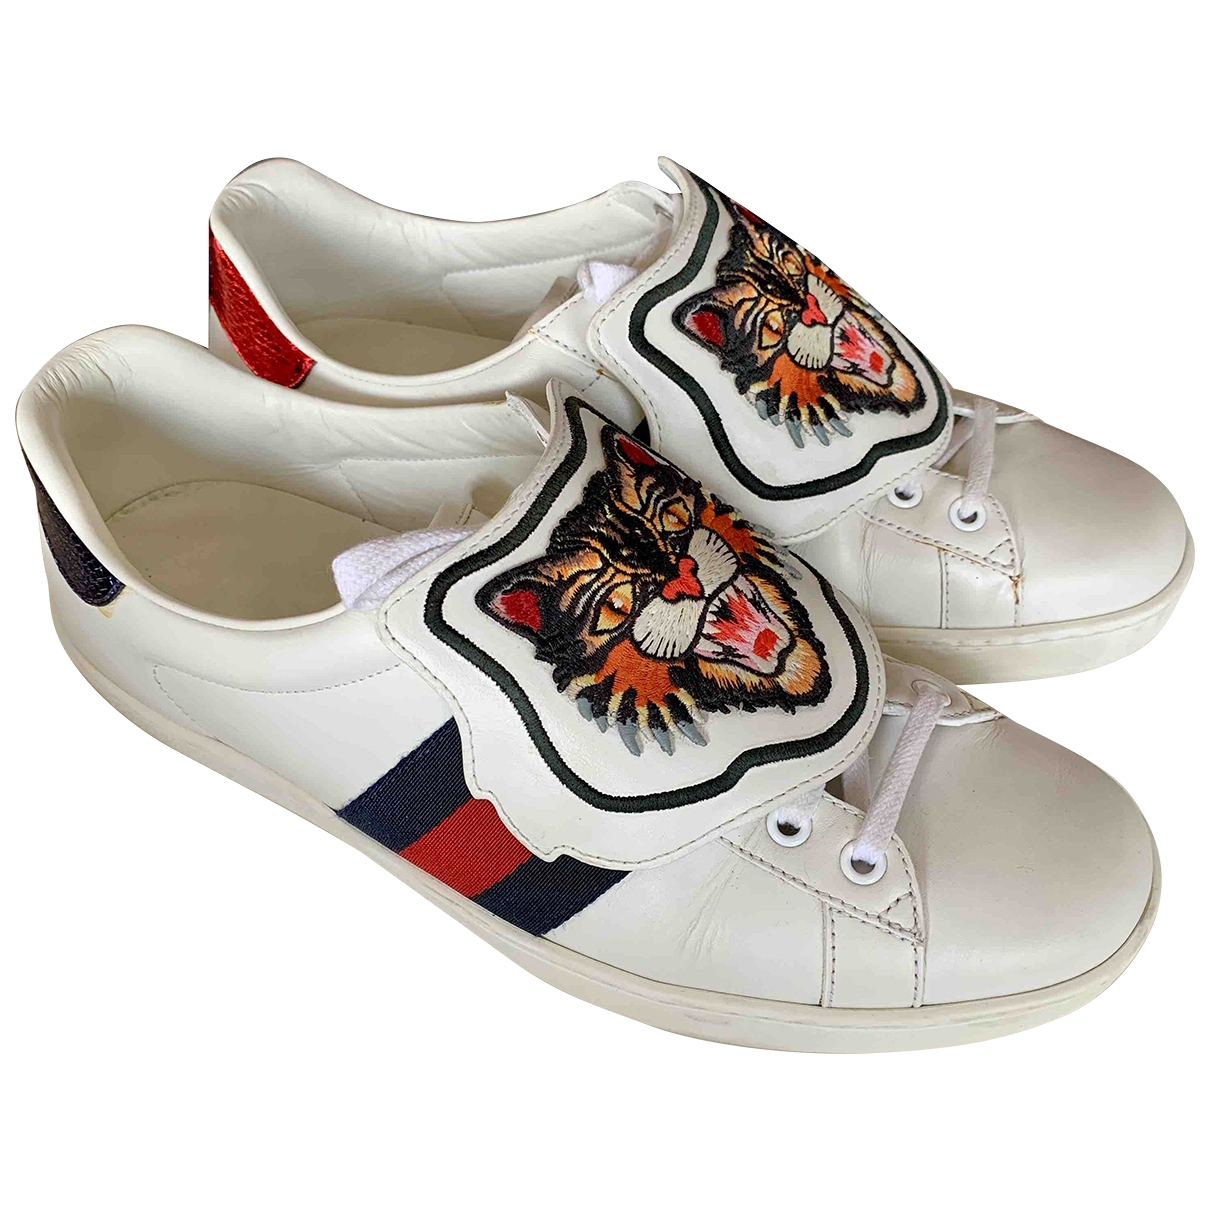 Gucci Ace White Leather Trainers for Men 8 UK